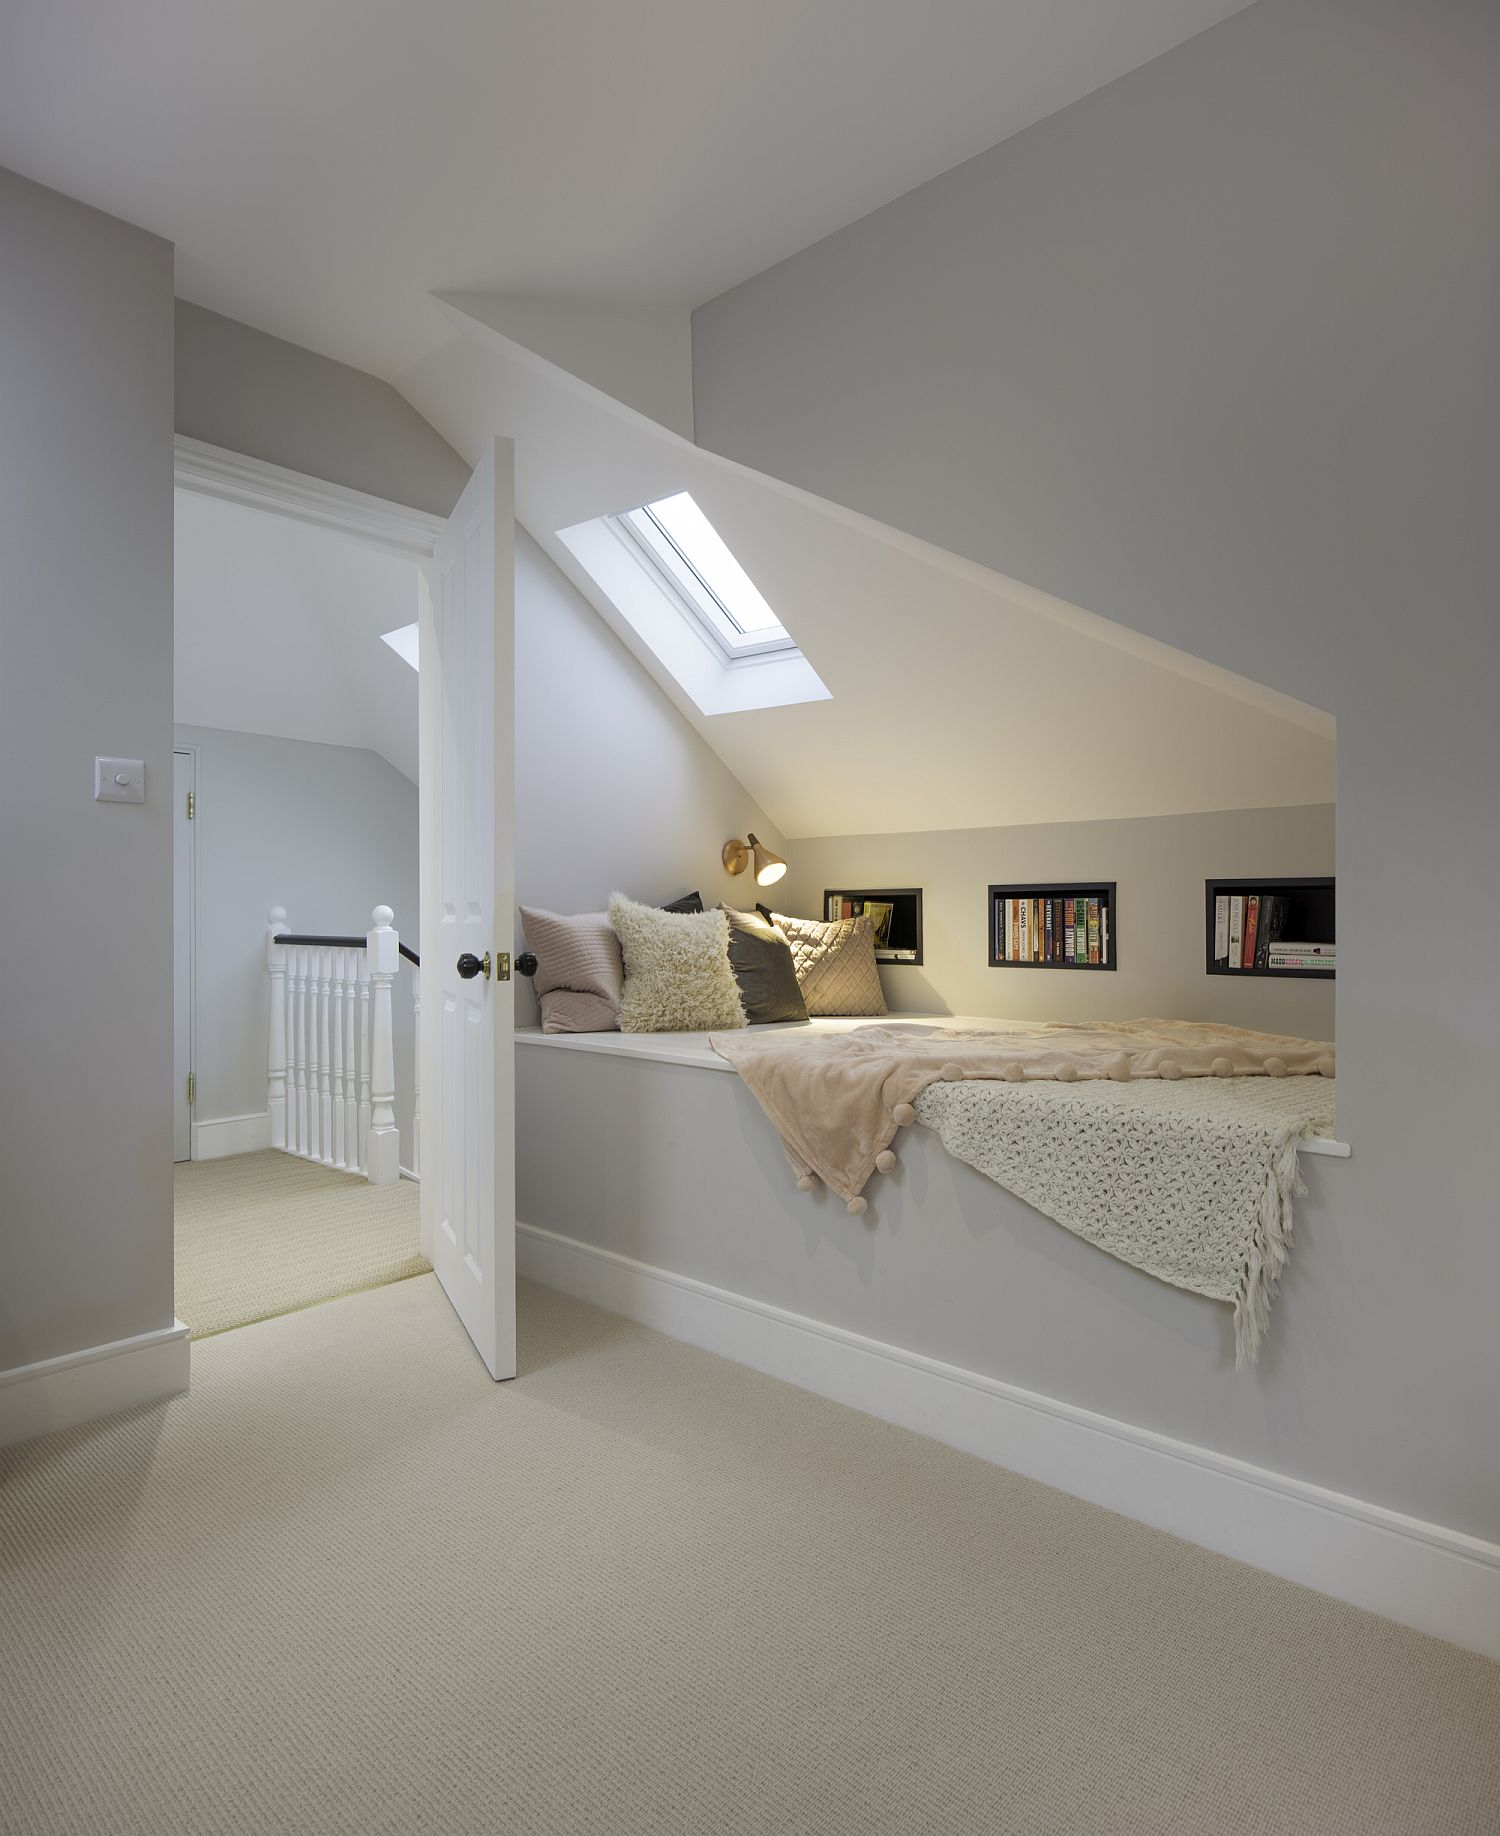 Upper level bedroom and attic reading nook